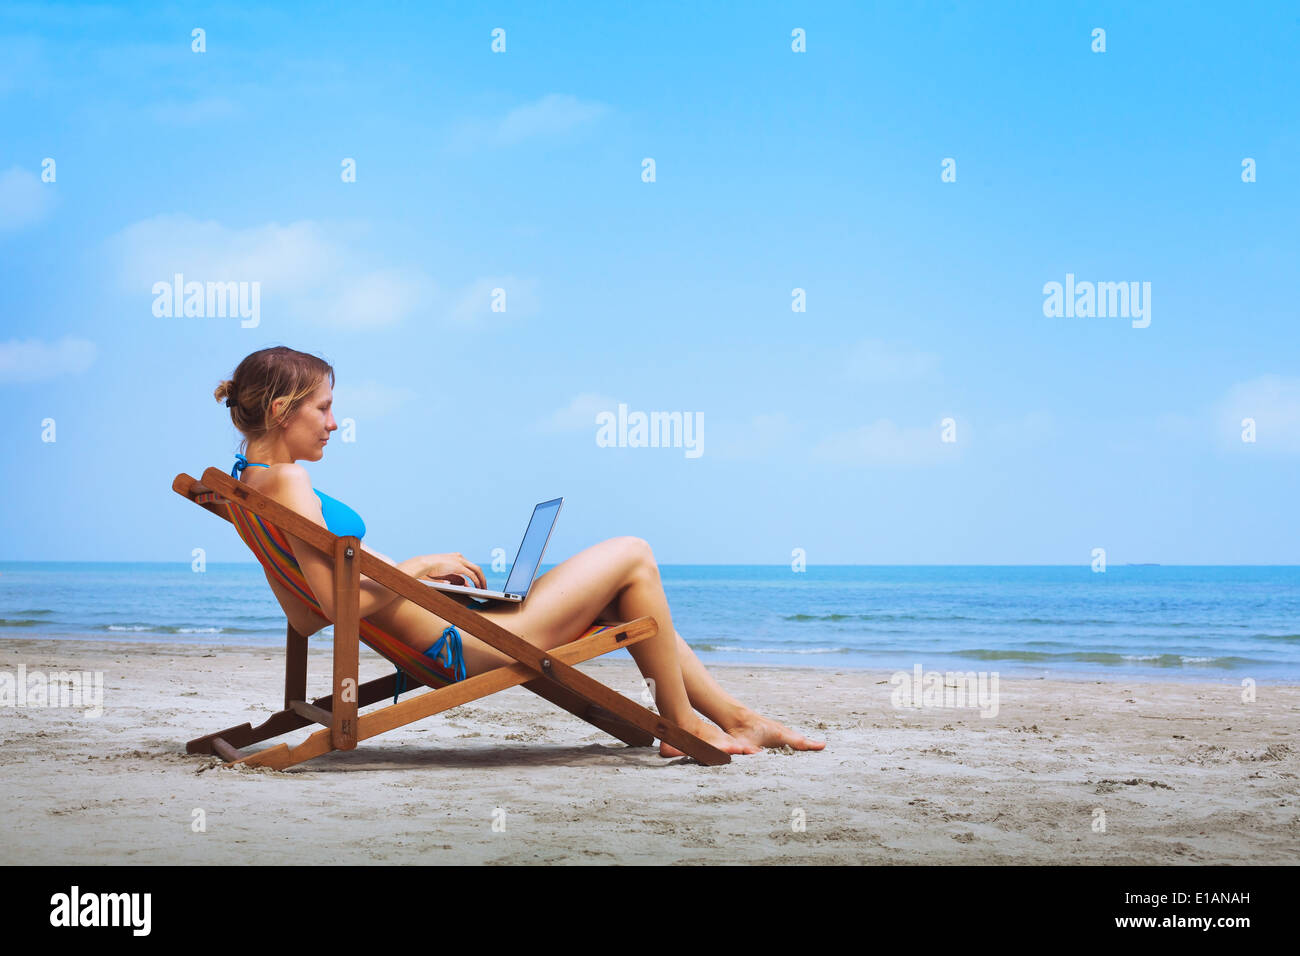 woman in bikini sitting with laptop on the beach - Stock Image